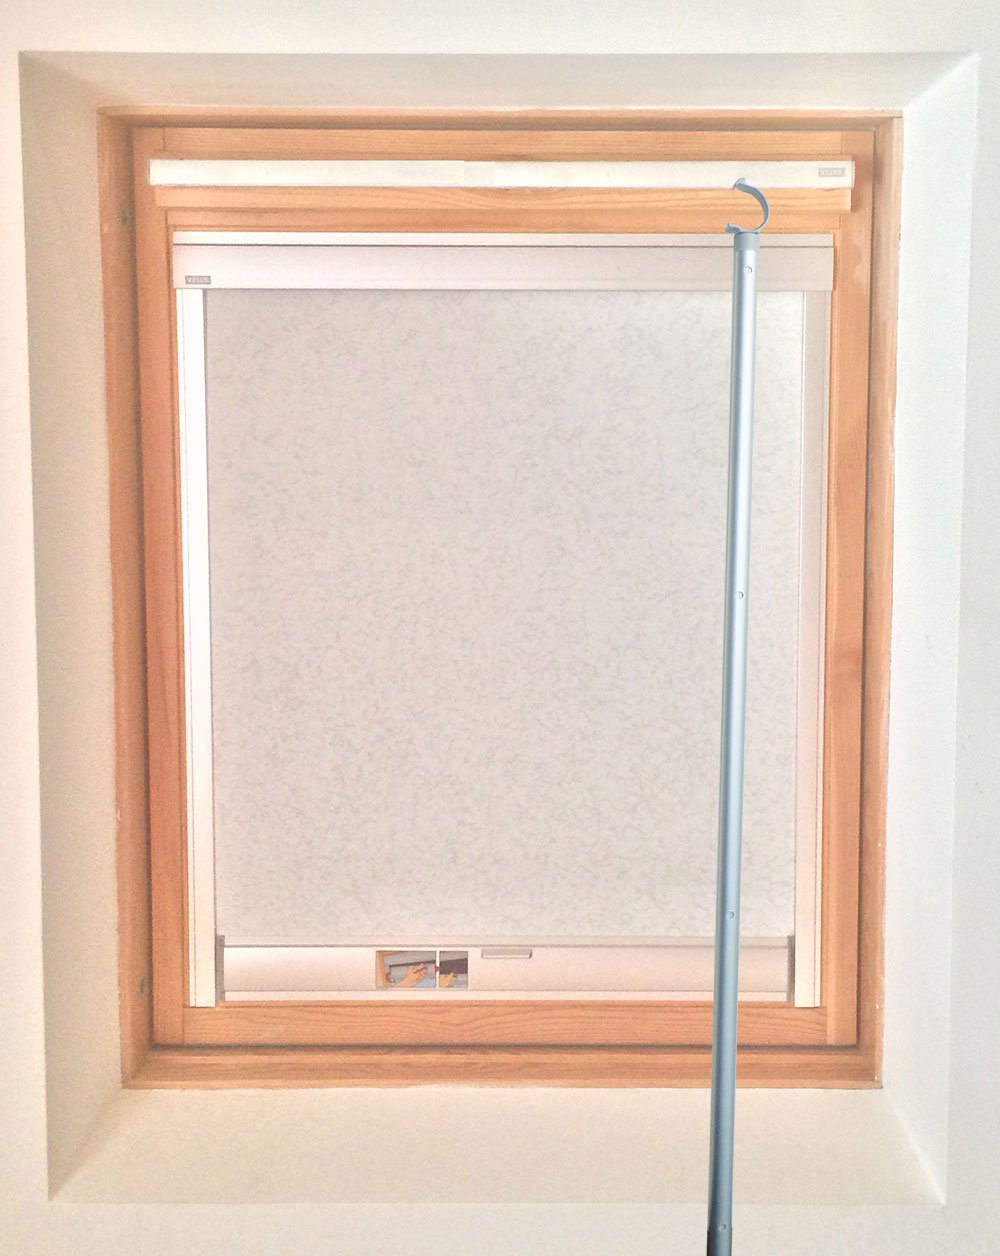 1 8m telescopic window rod pole designed for velux sky for Velux customer support